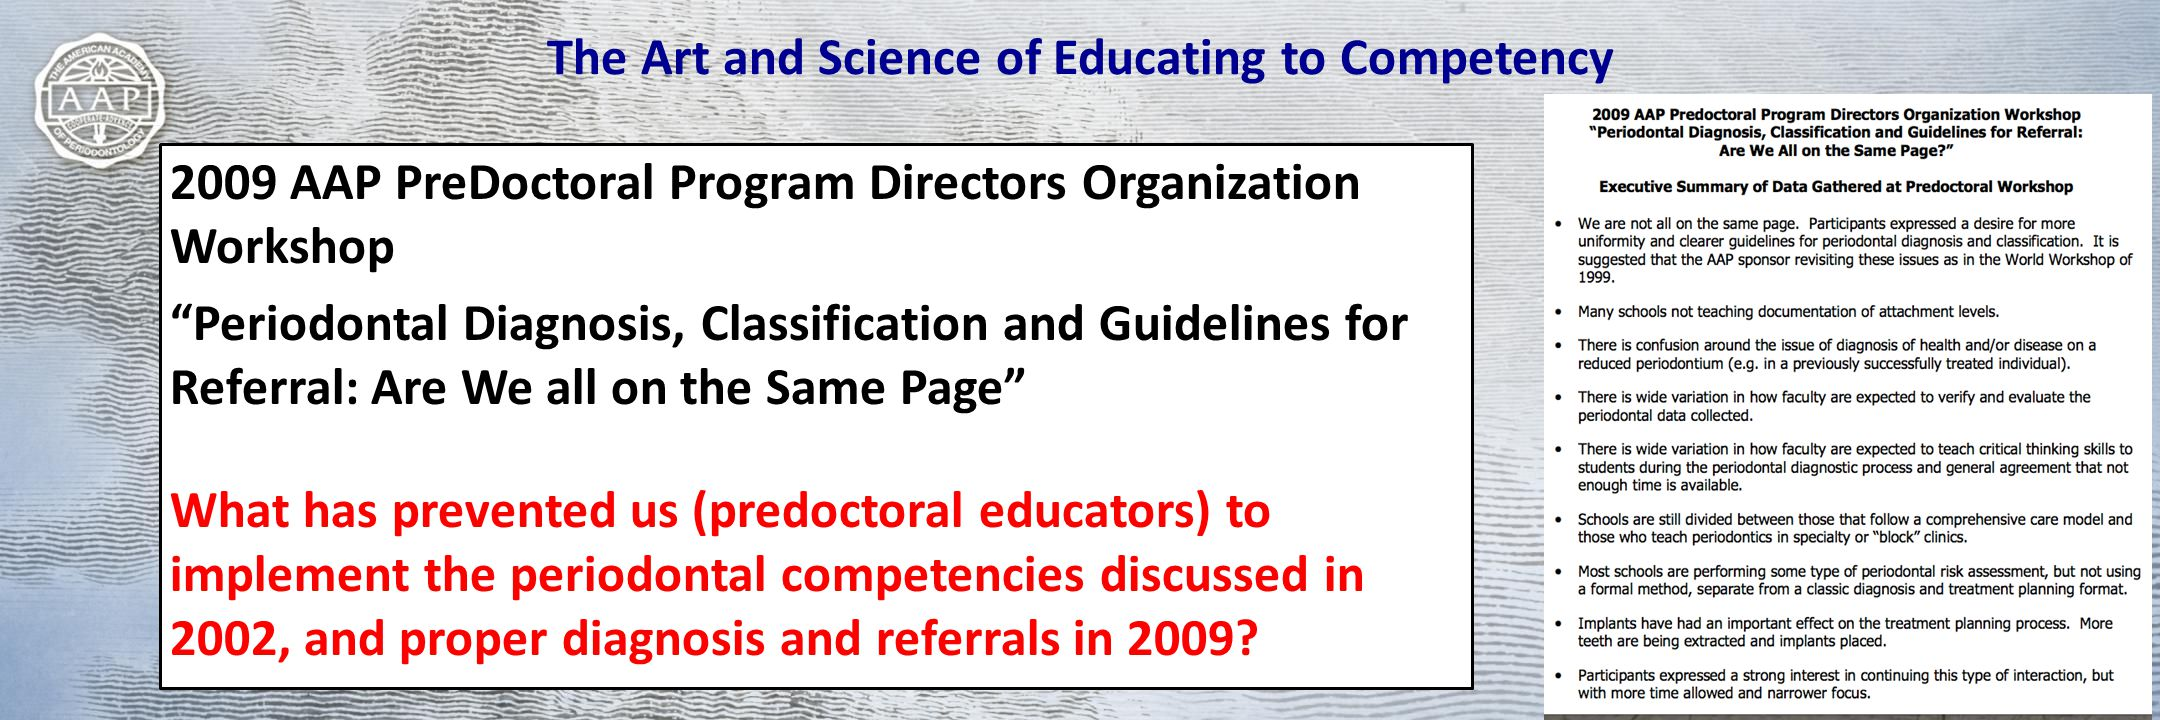 The Art and Science of Educating to Competency 2009 AAP PreDoctoral Program Directors Organization Workshop Periodontal Diagnosis, Classification and Guidelines for Referral: Are We all on the Same Page What has prevented us (predoctoral educators) to implement the periodontal competencies discussed in 2002, and proper diagnosis and referrals in 2009?